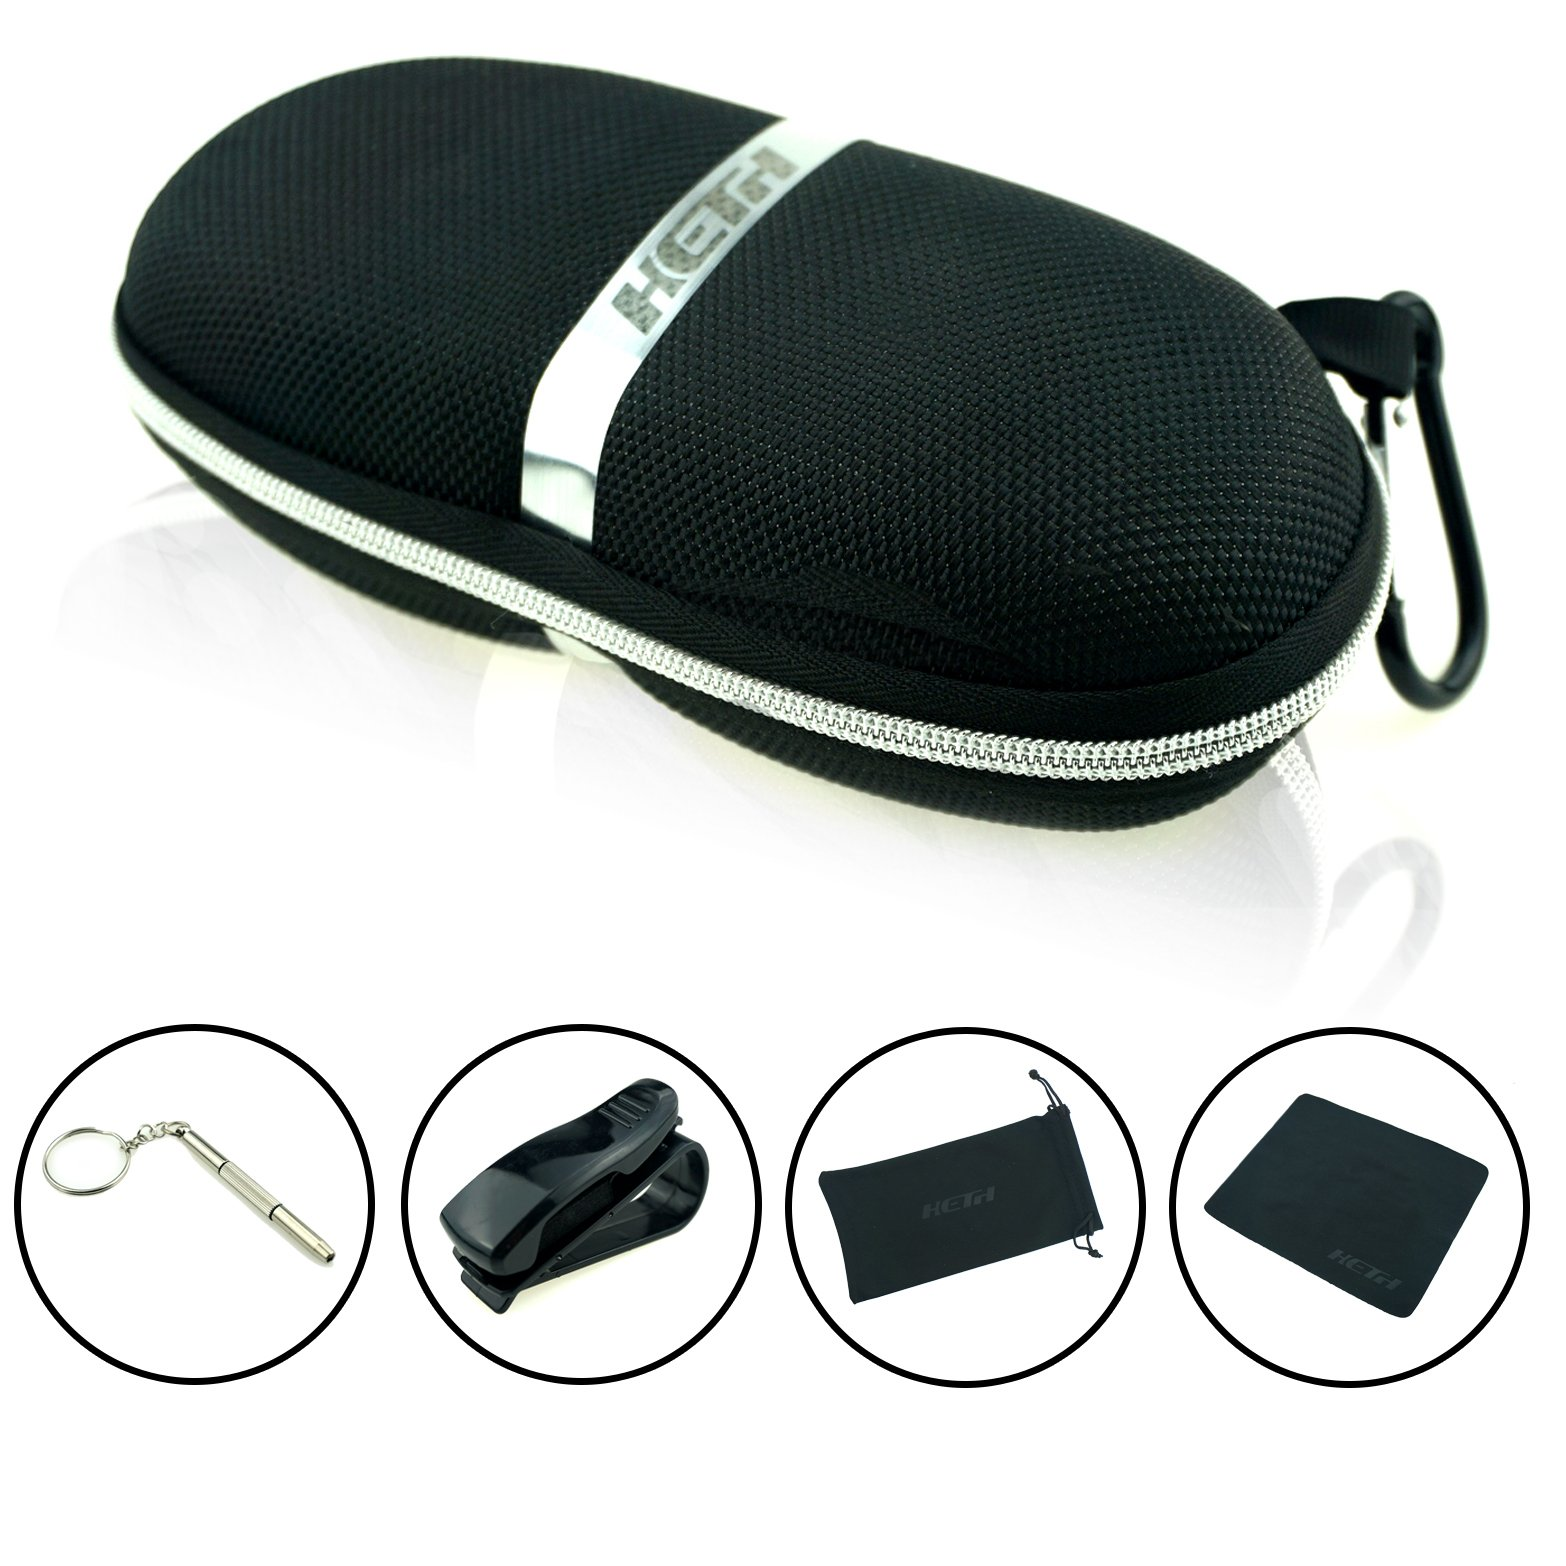 Sunglasses Cases,Semi Hard Portable compressive Strength Travel Zipper Eyeglass Cases with Carabiner. (Black)